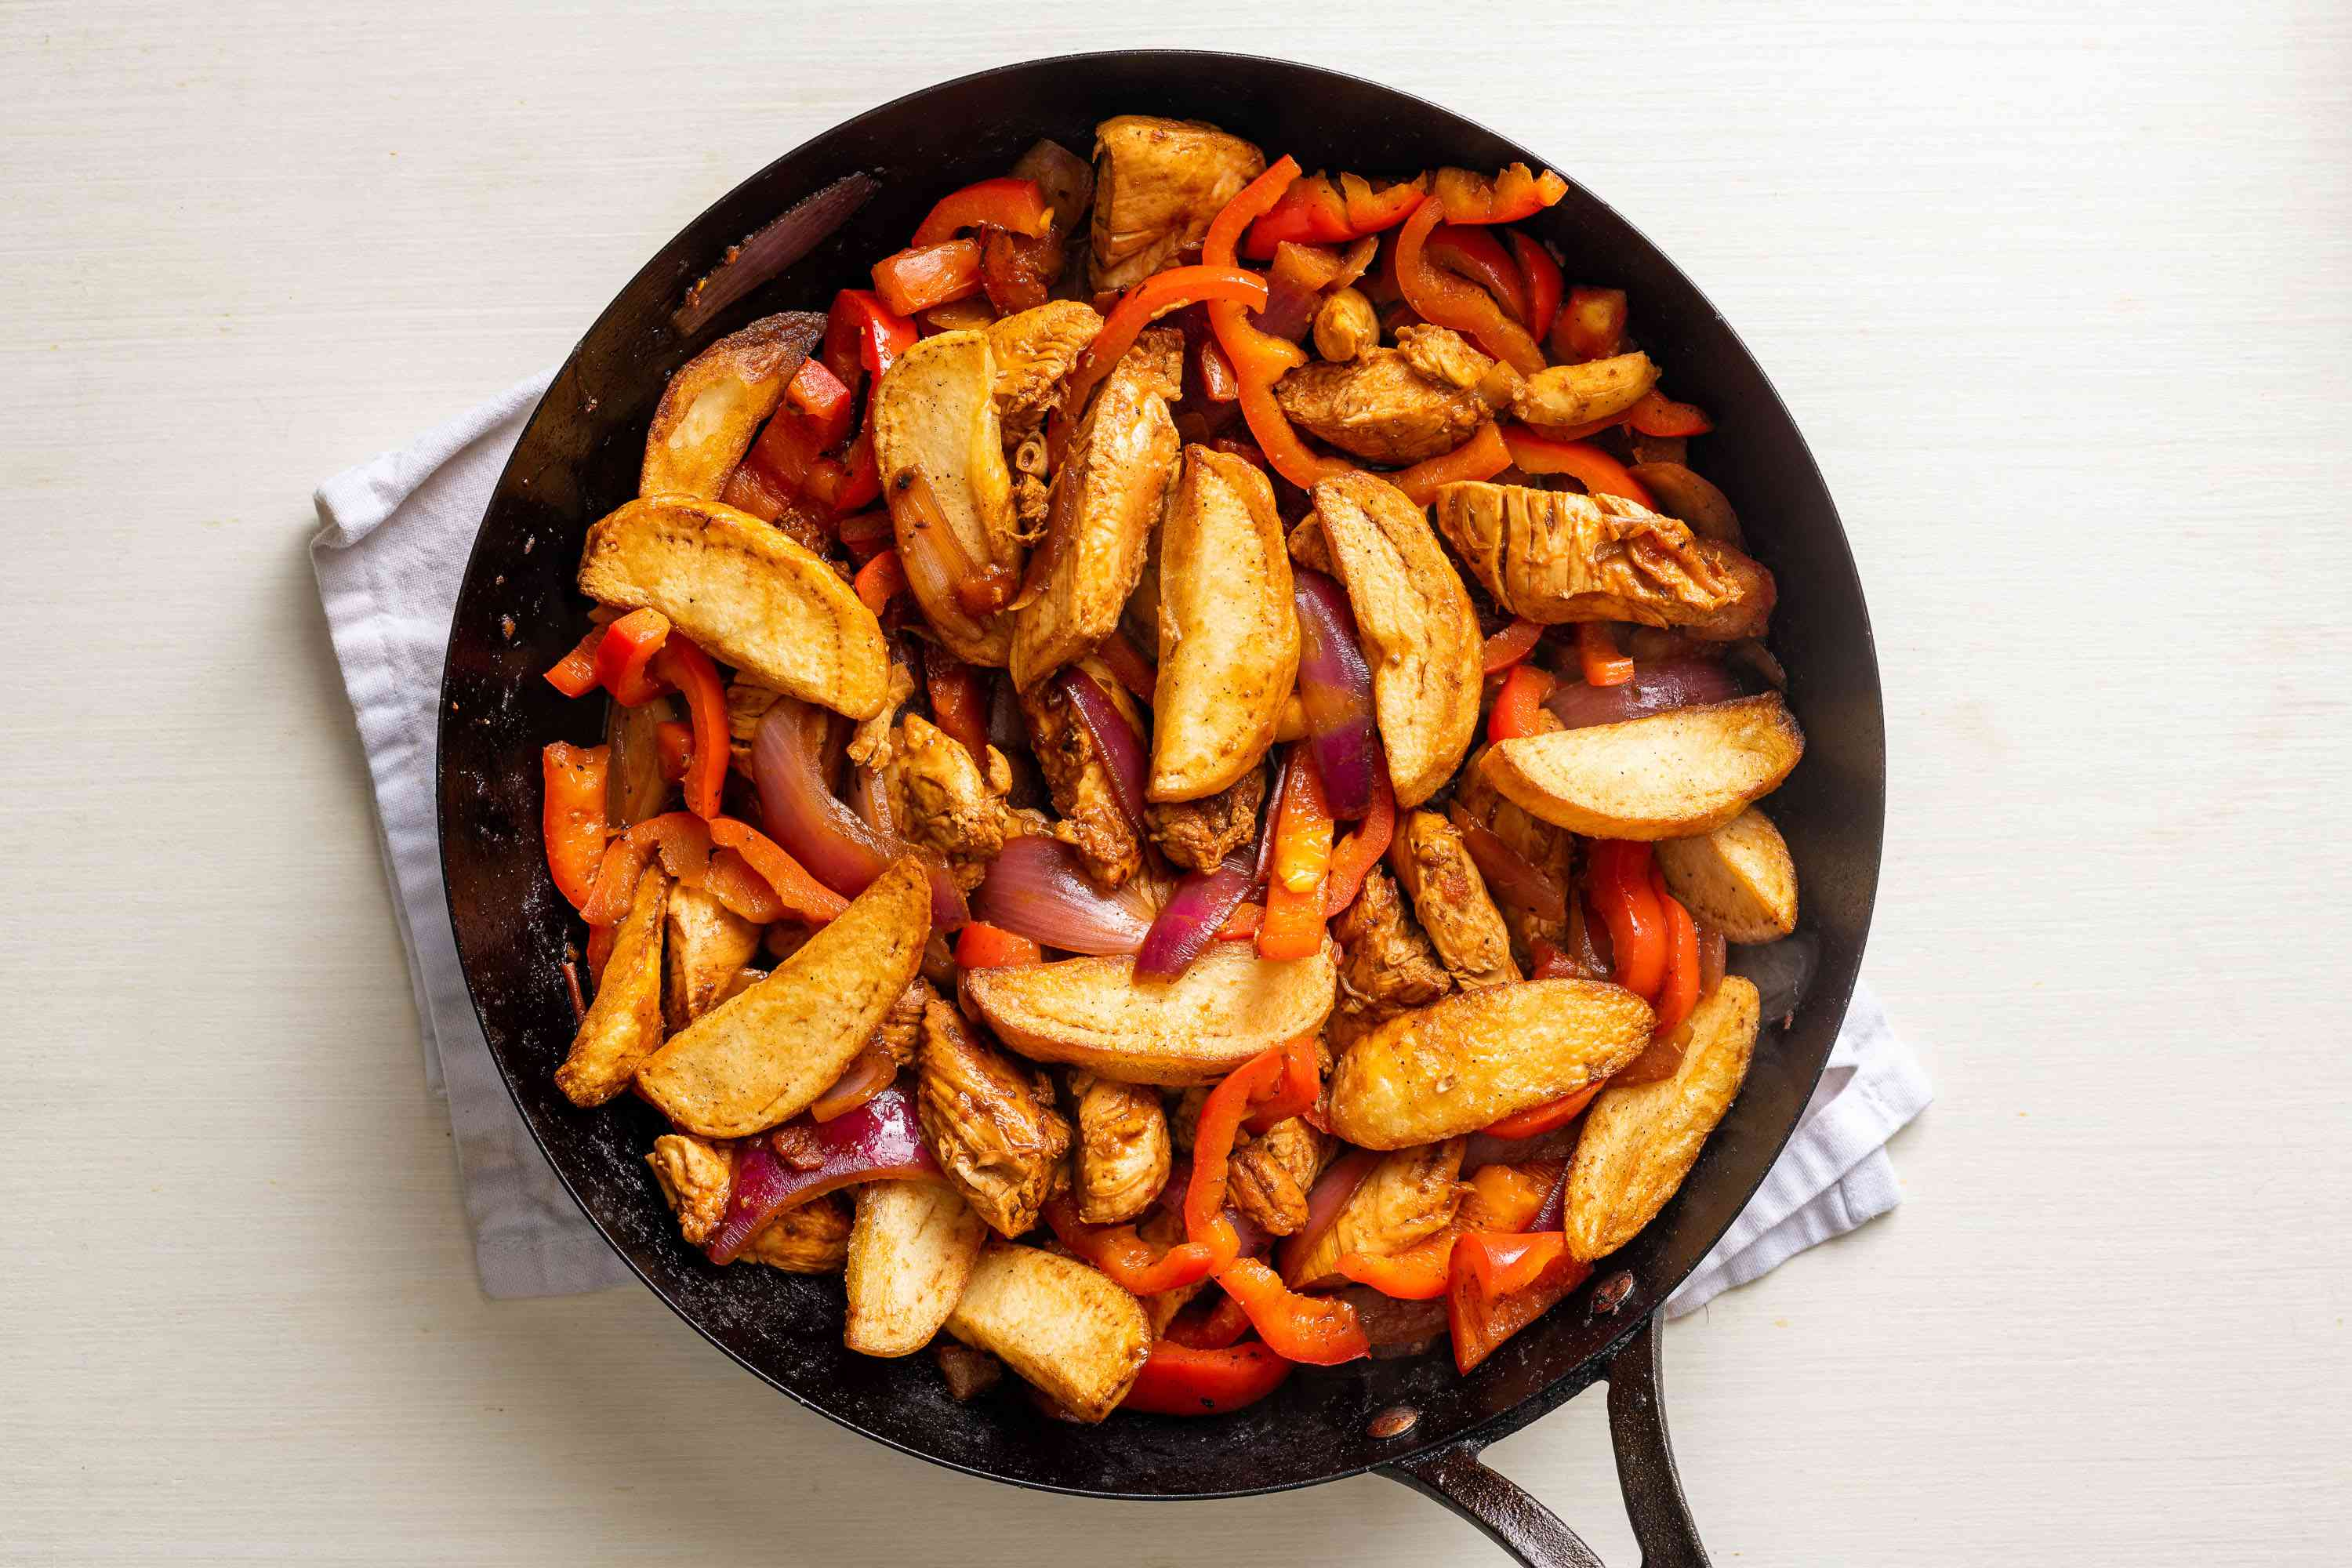 potatoes added to the pan with chicken and vegetables